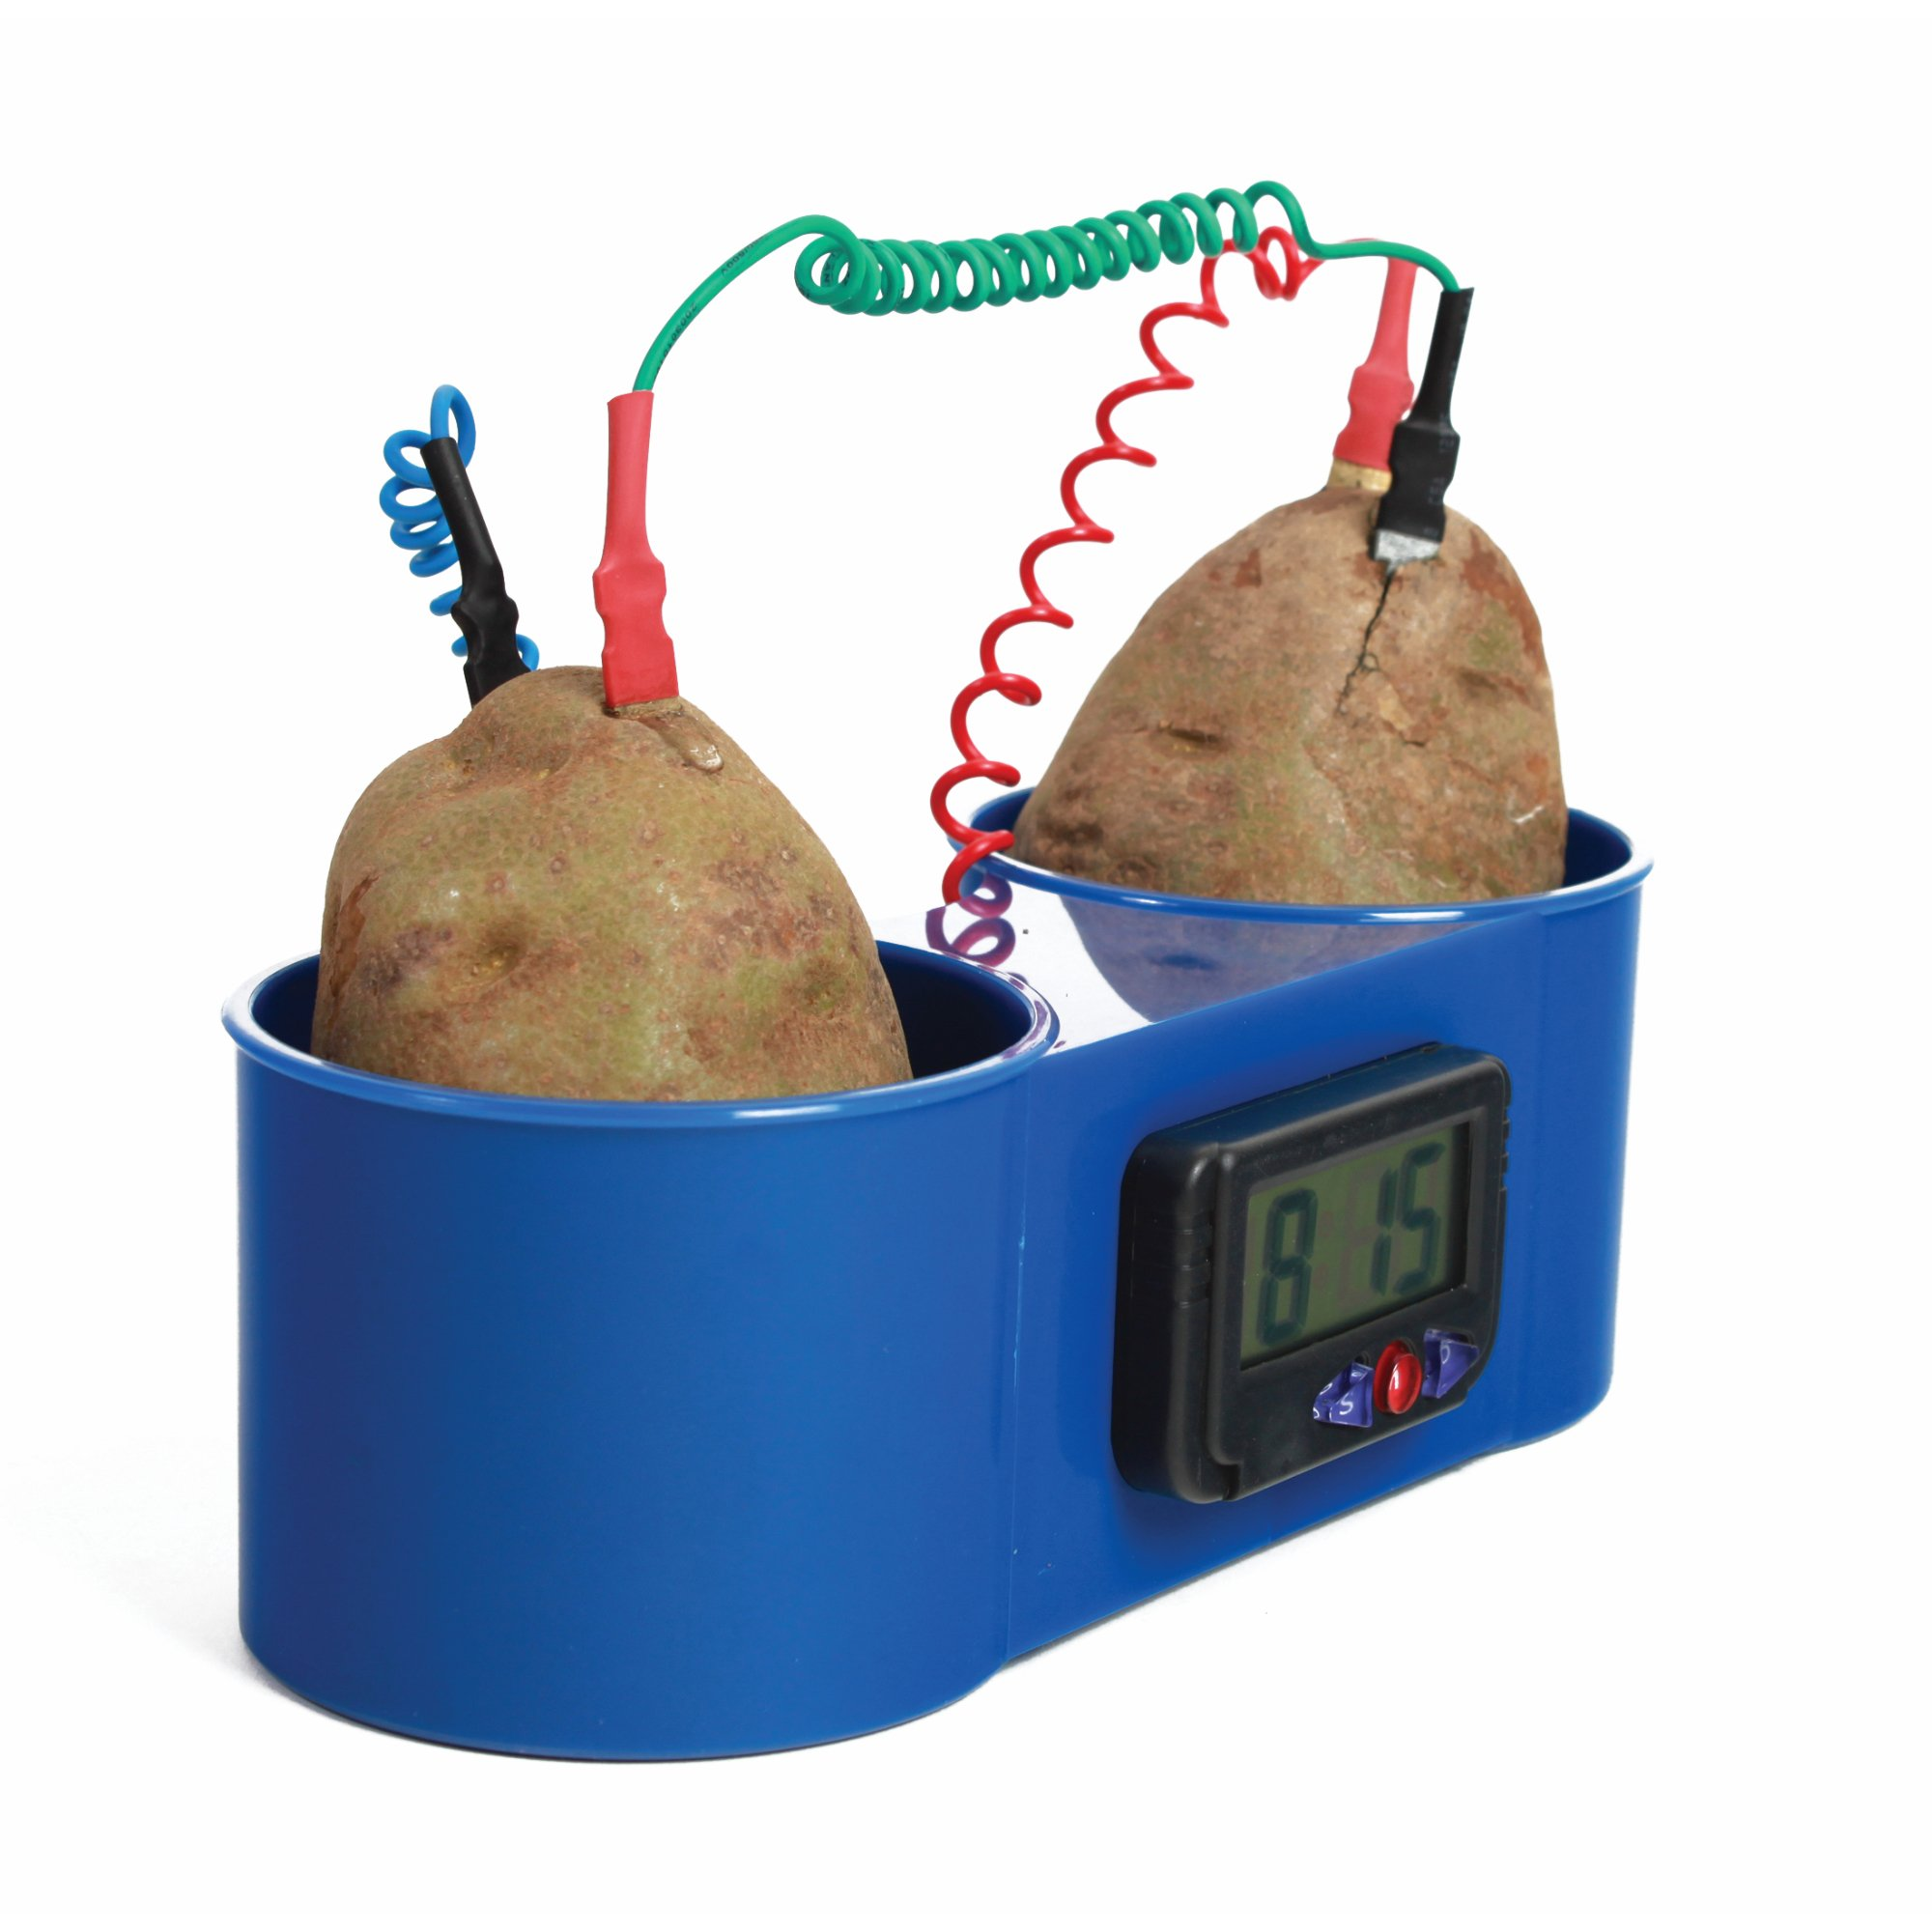 American Educational Blue Plastic Two Potato Clock, 8-1/2'' Length x 3-1/2'' Width x 2-3/4'' Height